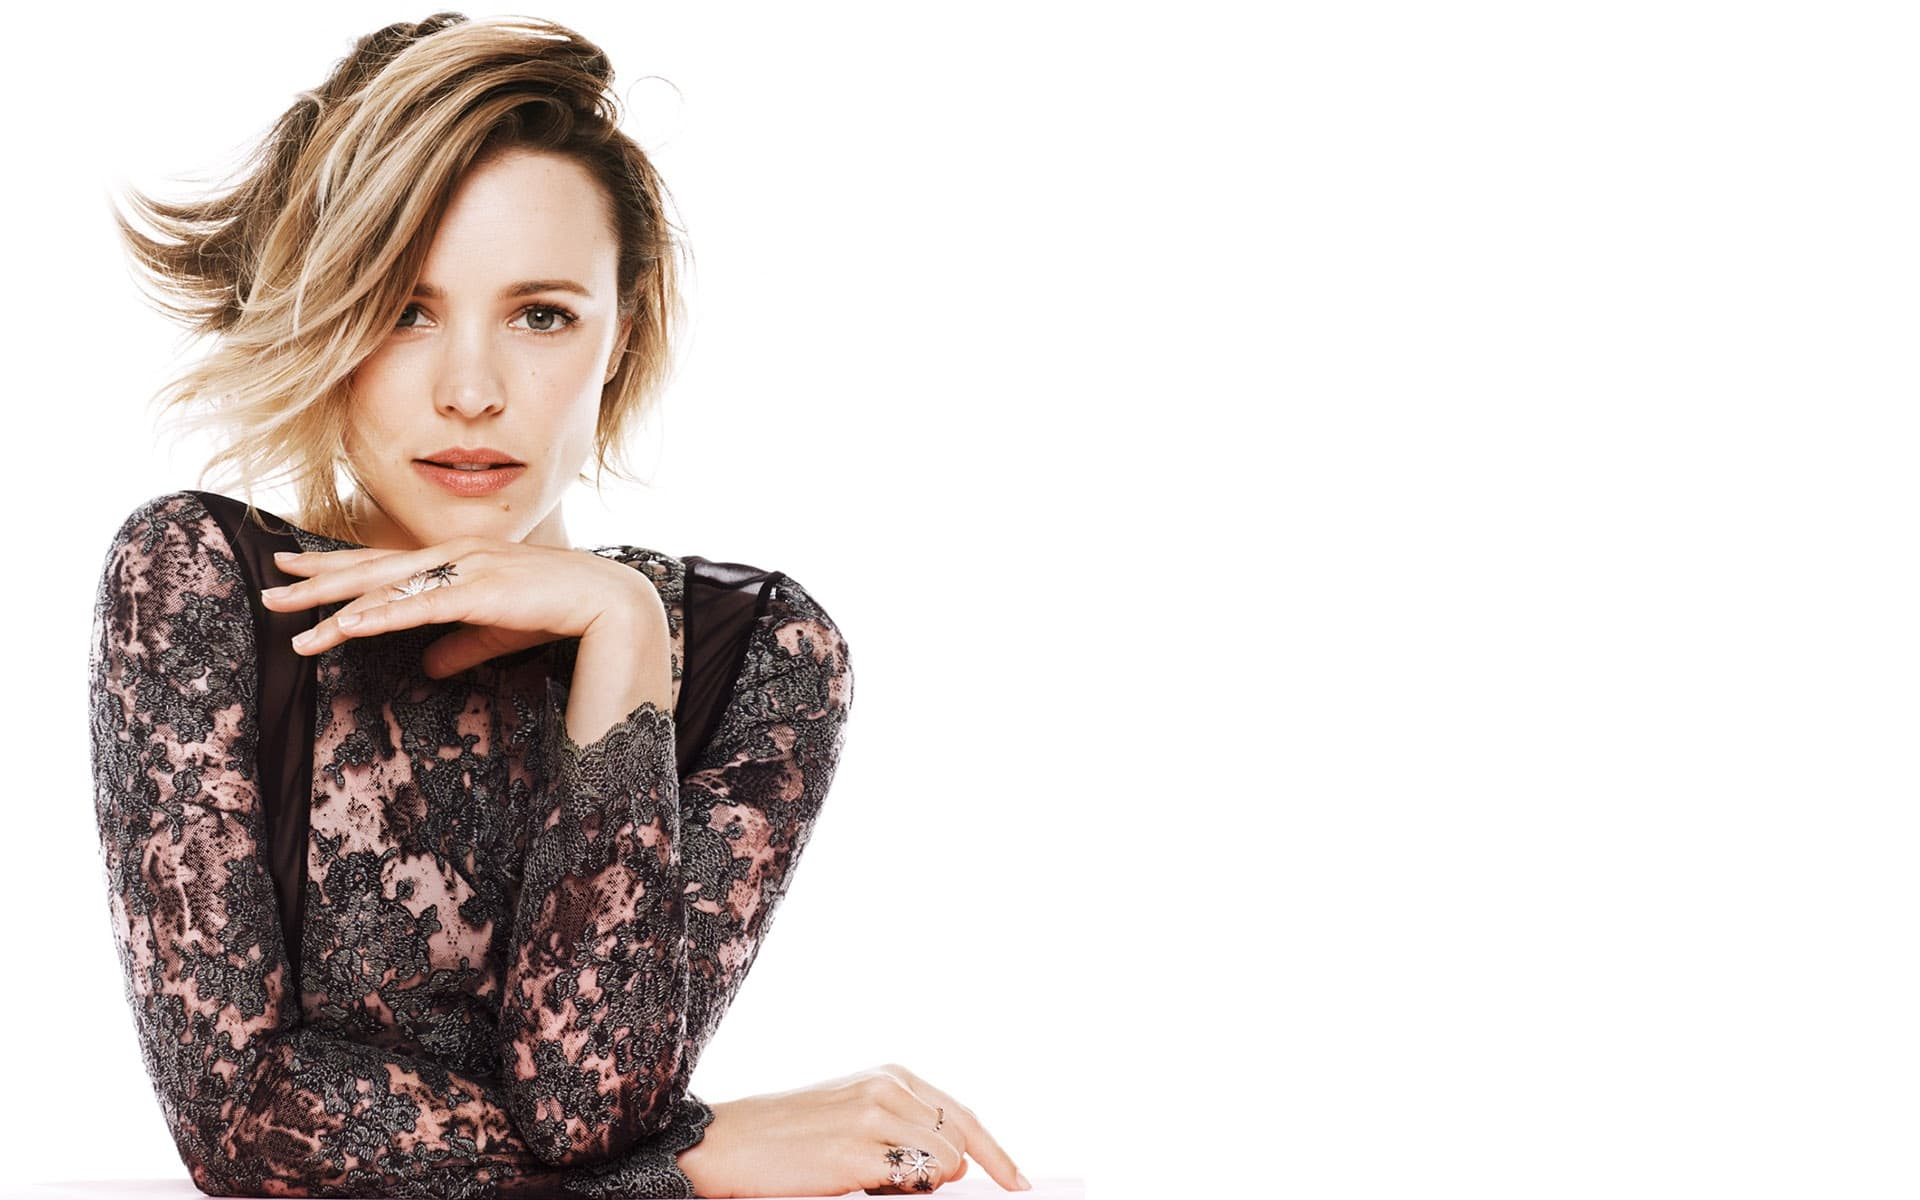 Rachel McAdams white Wallpapers in HD